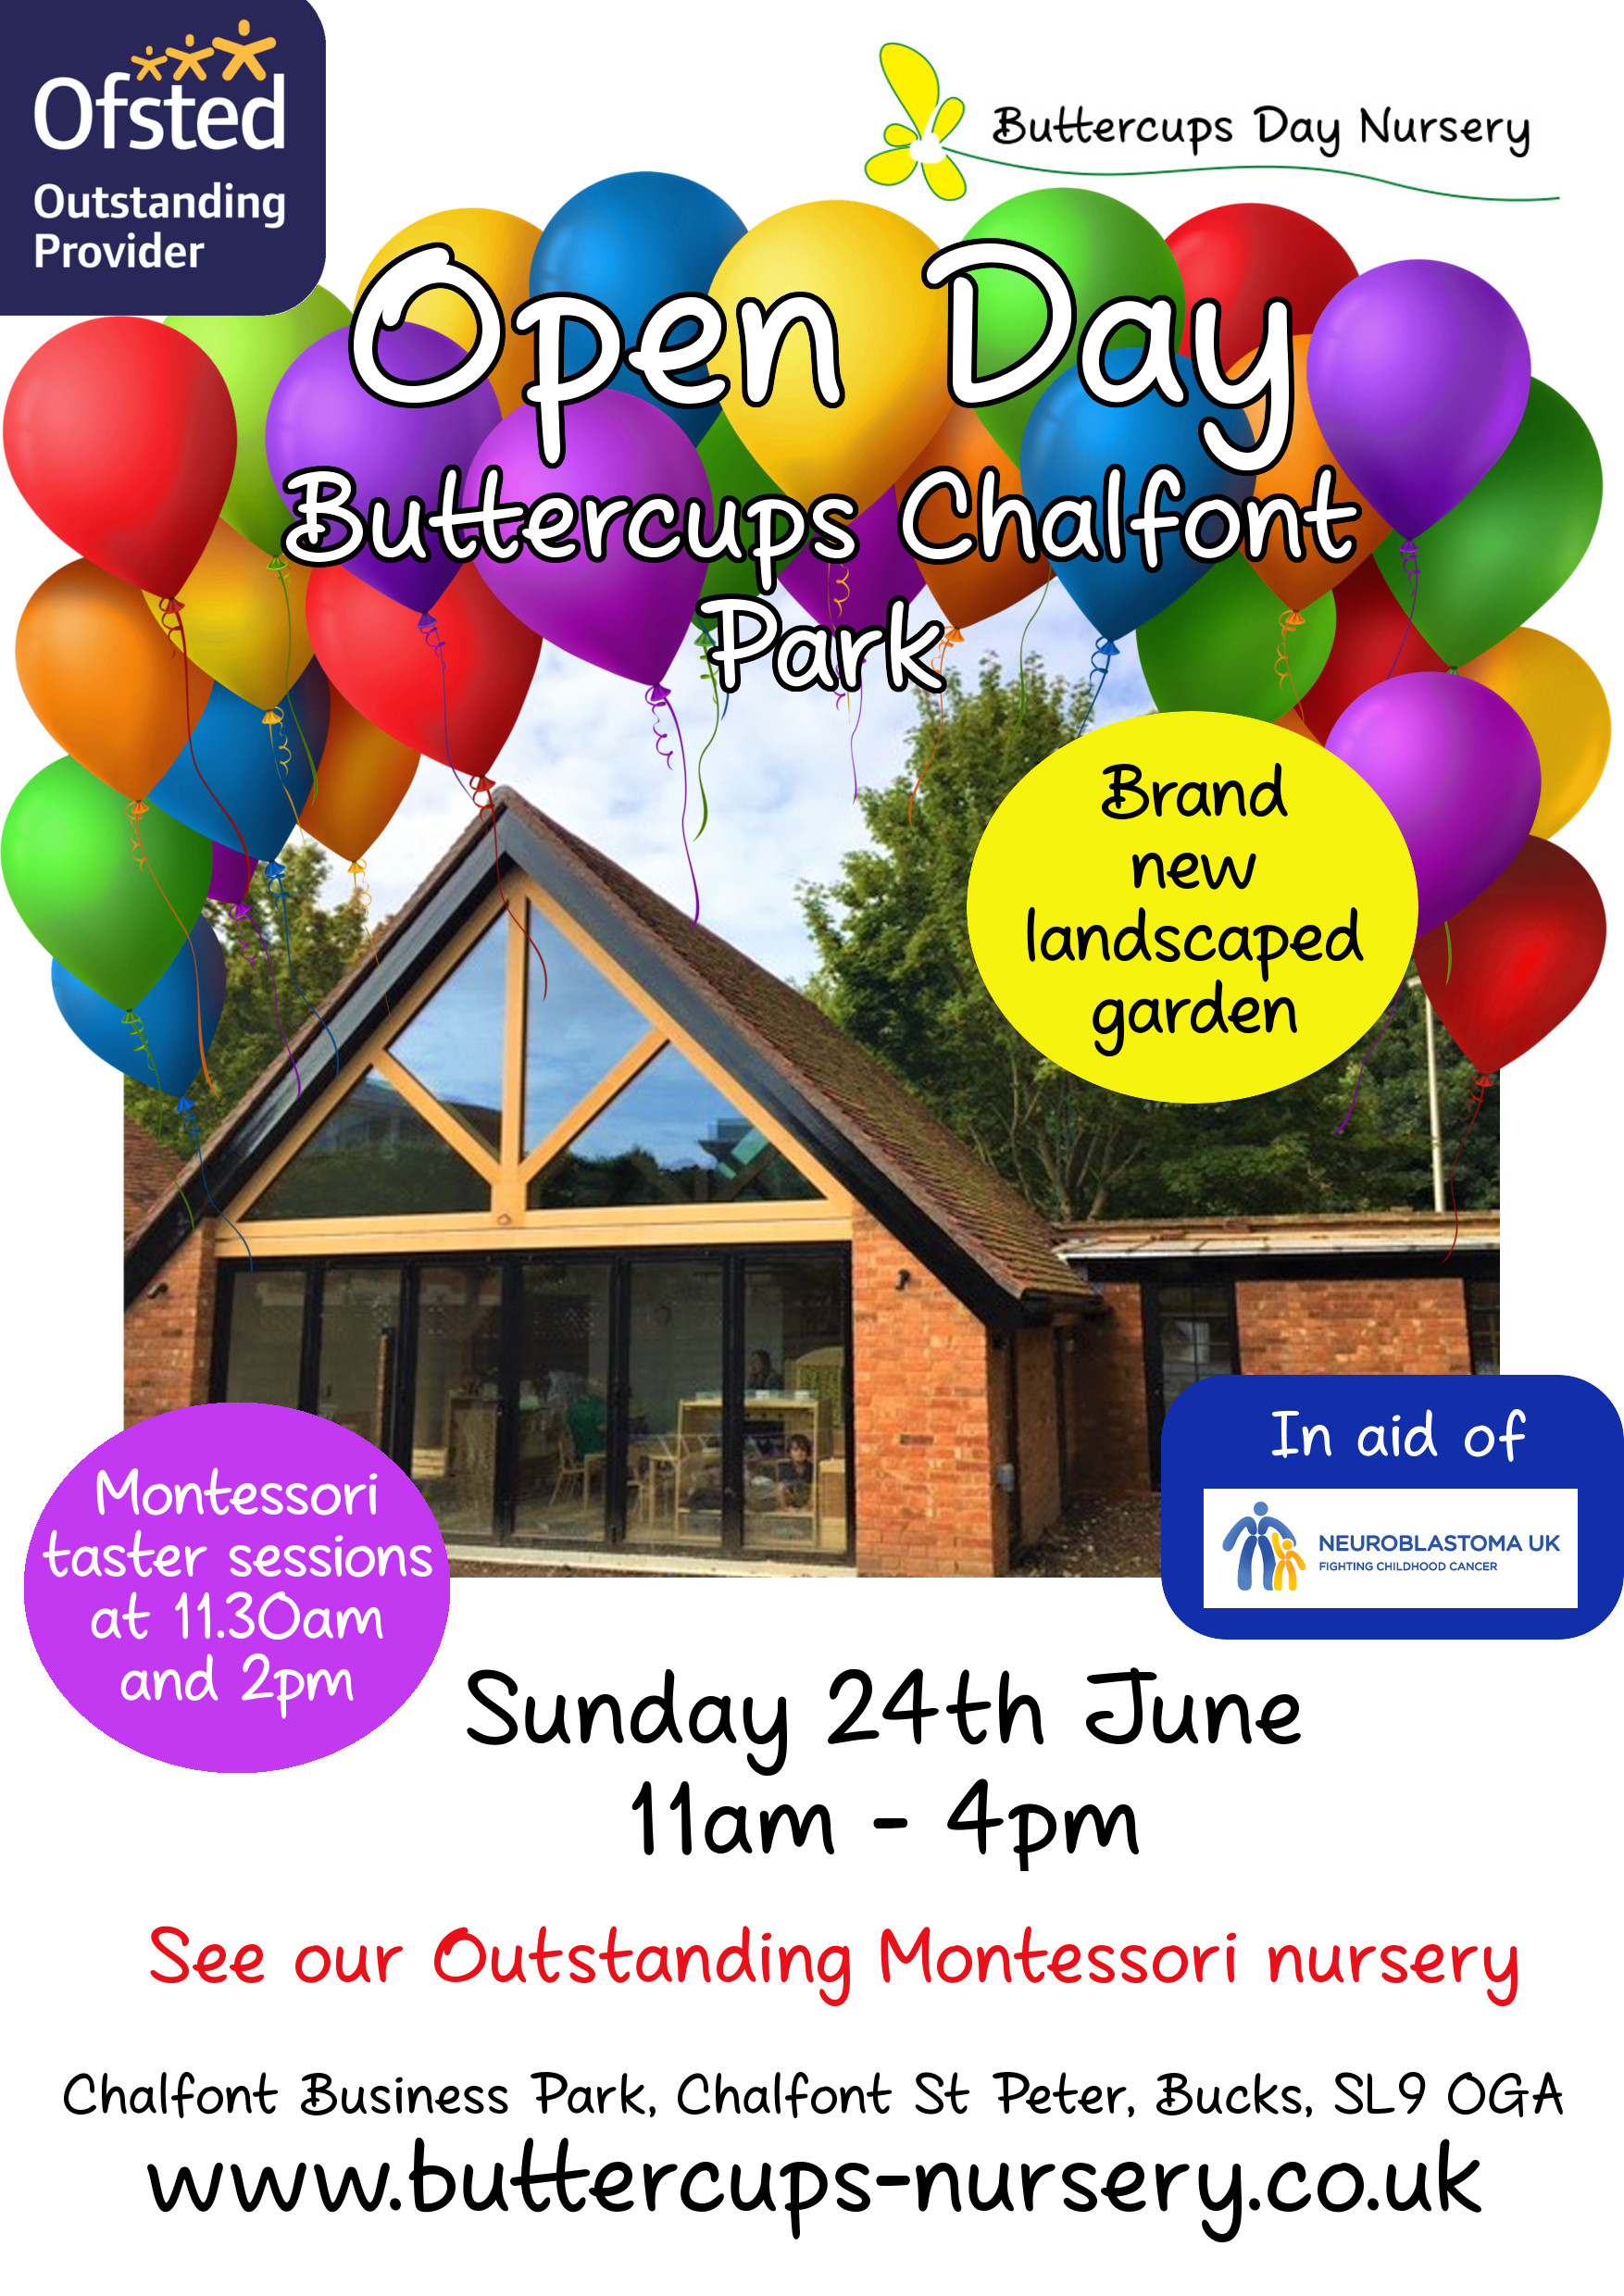 Open Day at Buttercups Chalfont Park